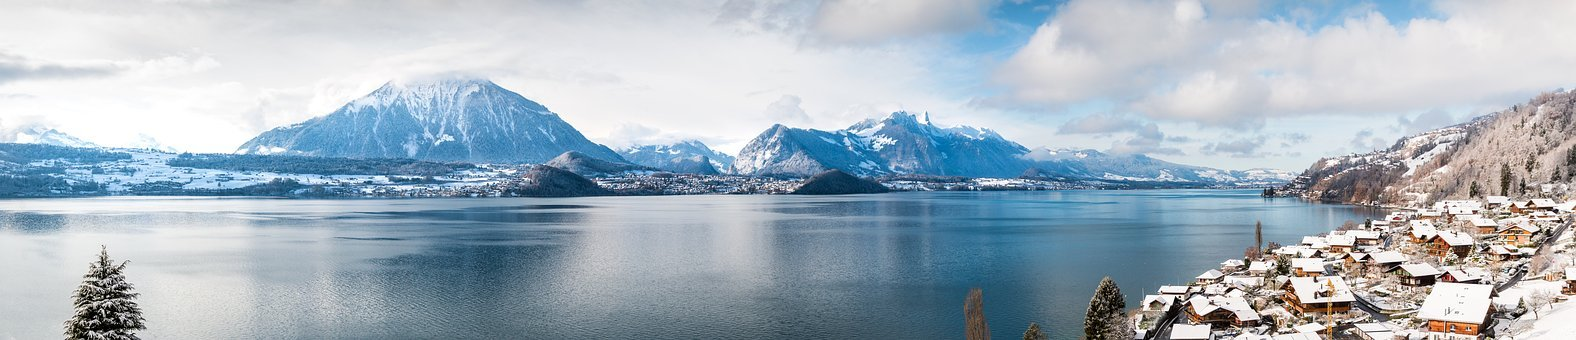 Merligen, Sneezing, Lake Thun, Winter, Apartments